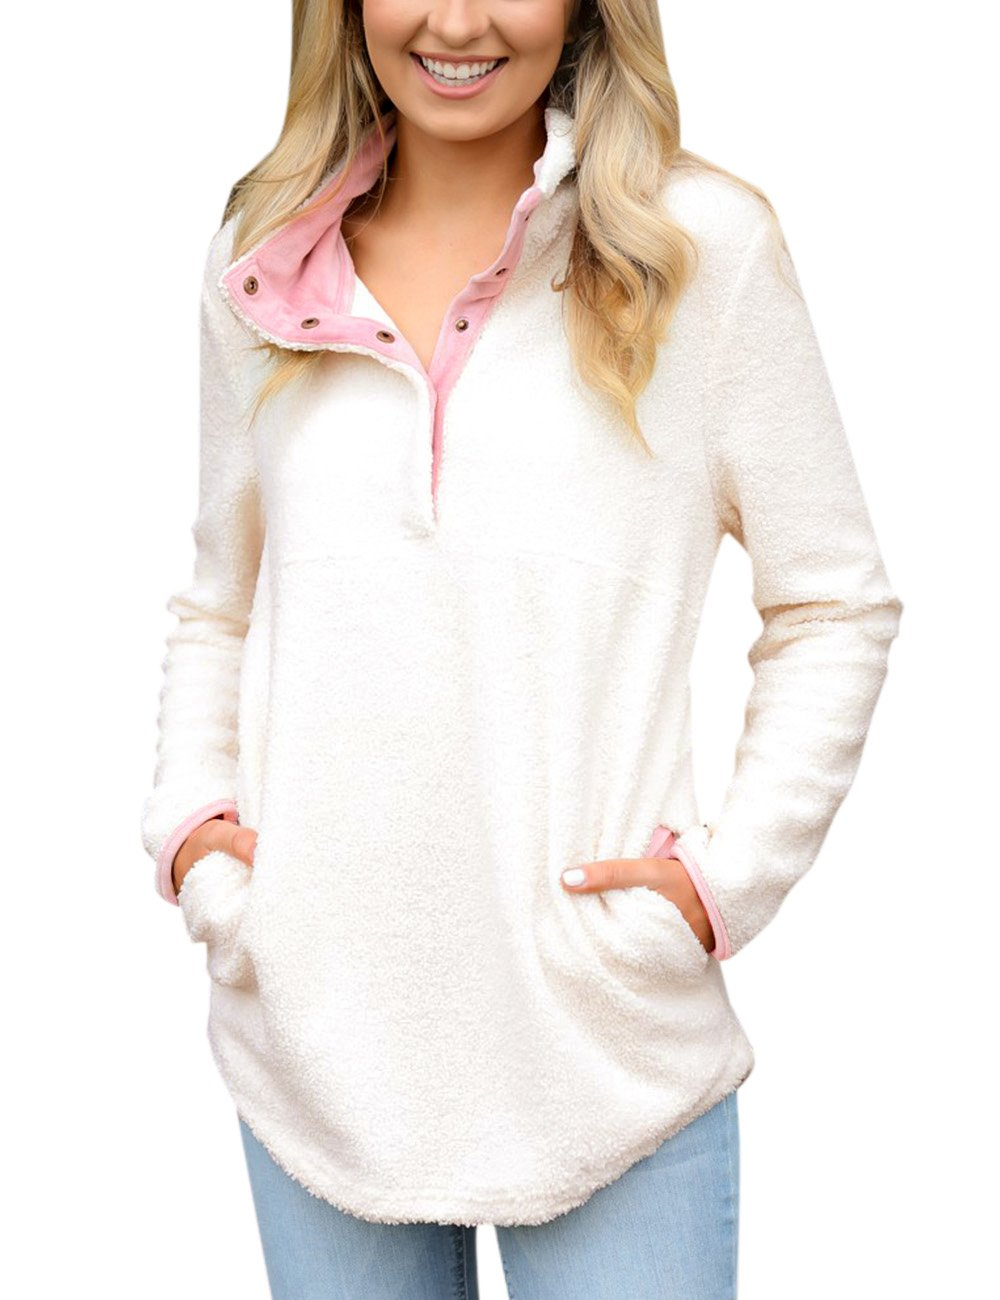 GRAPENT Women's Casual Long Sleeves Stand Collar Buttons Pockets Fleece Pullover Beige Size XL ( Fit US 16 - US 18 )